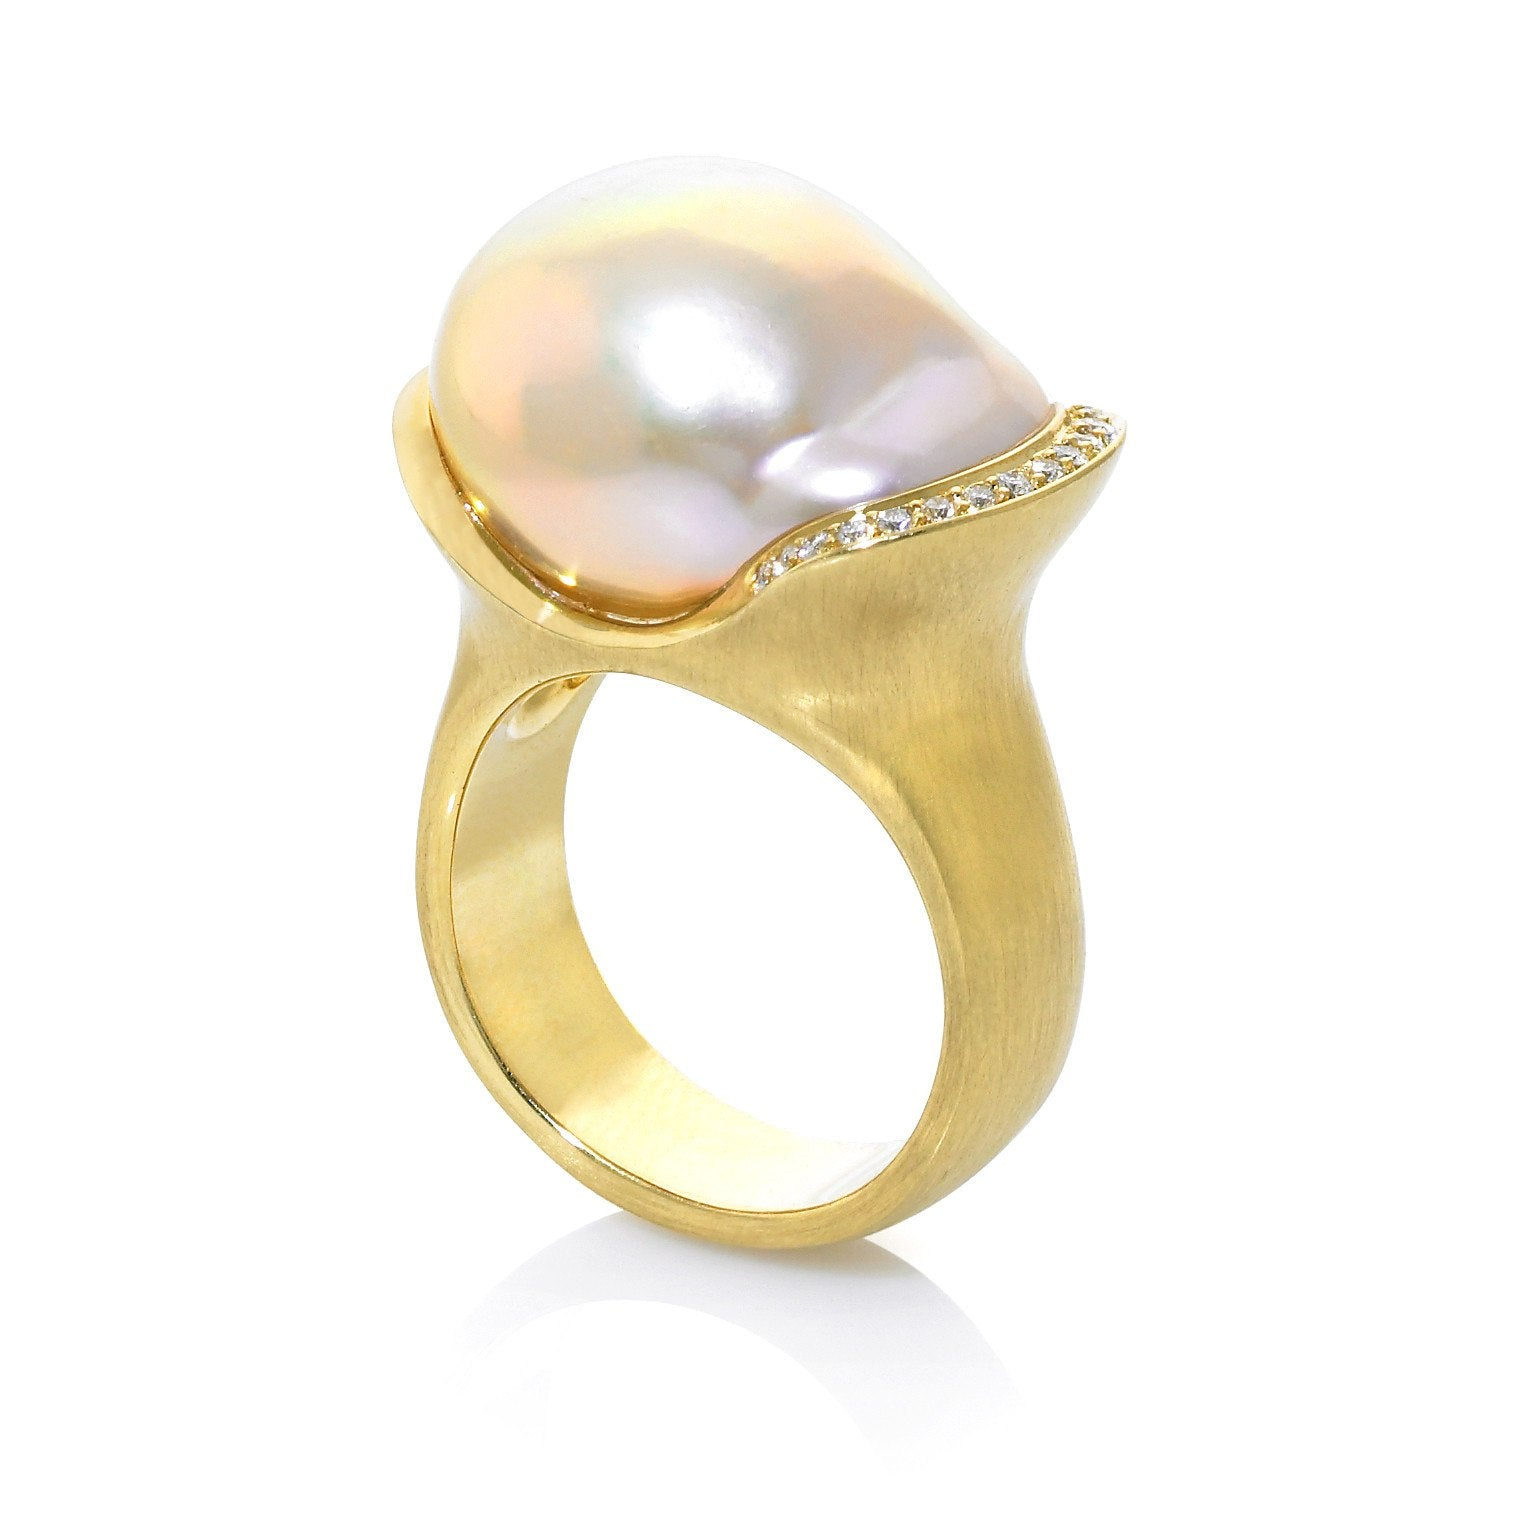 engagement on courtesy otte p rings this open freshwater the a best style people front com unique pearl href